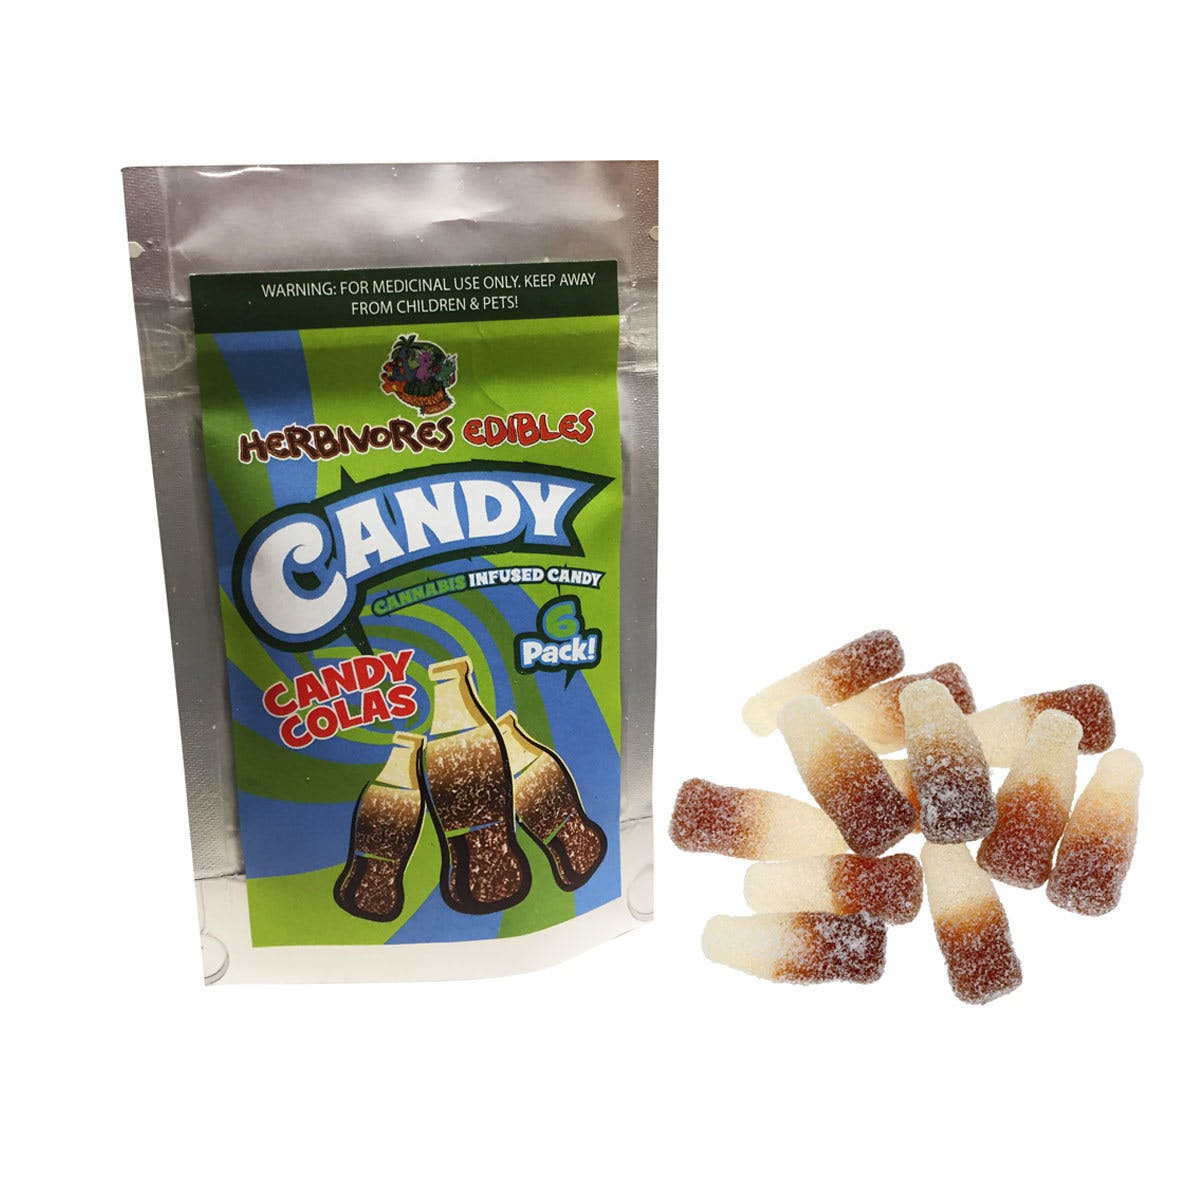 edible-herbivores-edibles-candy-colas